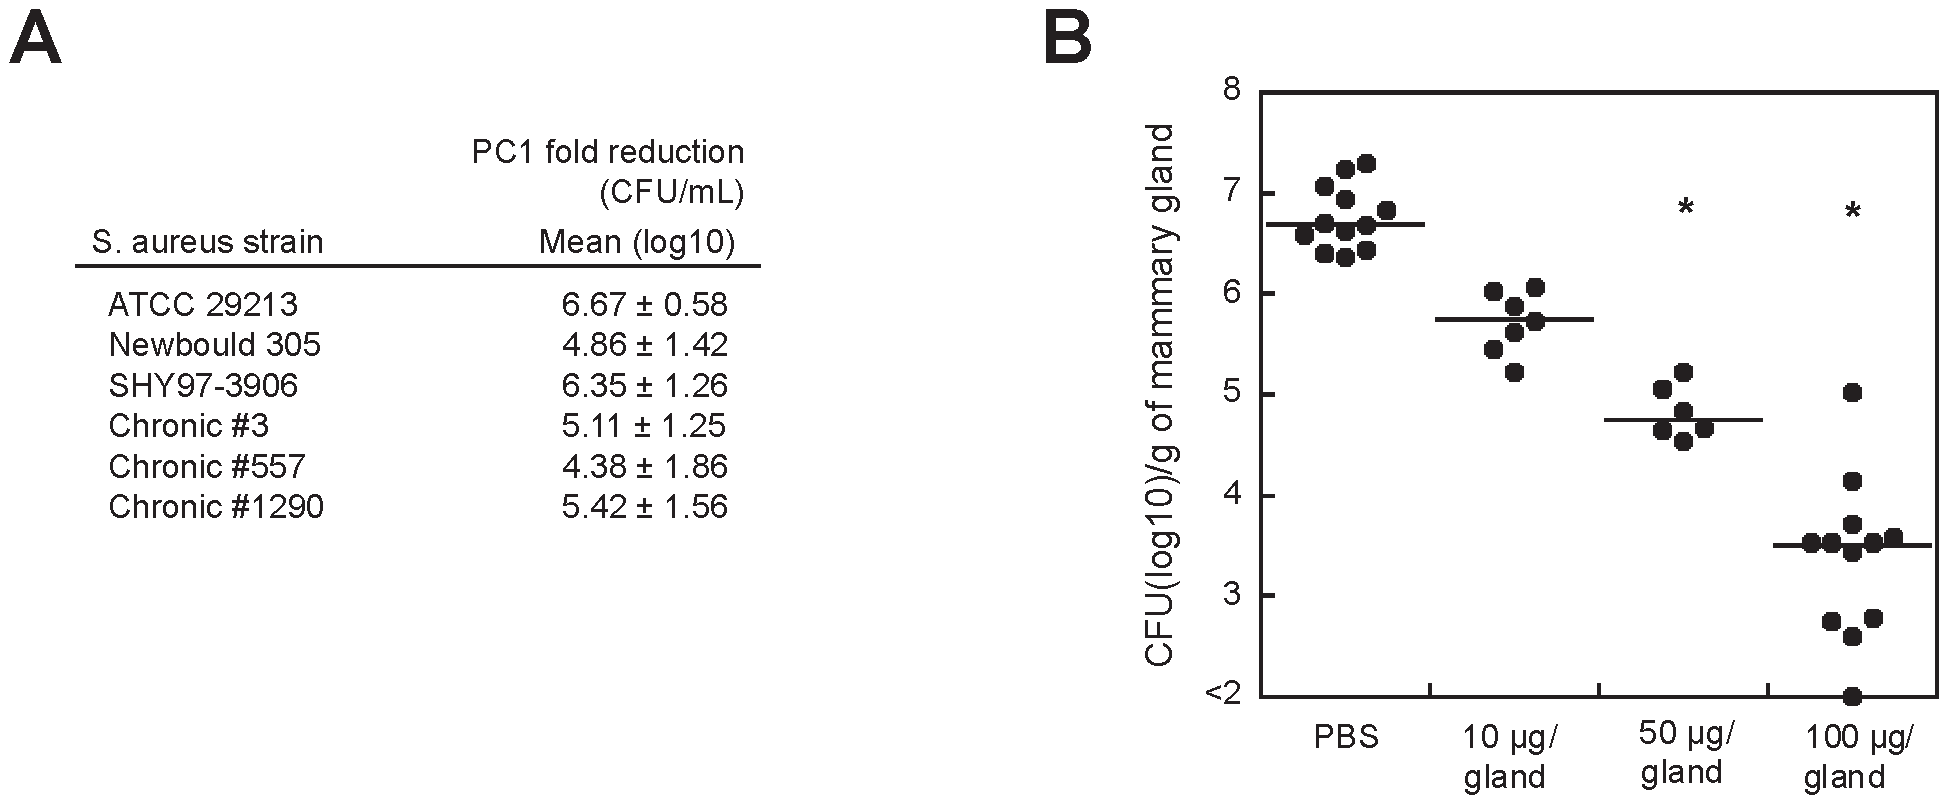 PC1 inhibits <i>S. aureus</i> clinical isolates <i>in vitro</i> and <i>in vivo.</i>